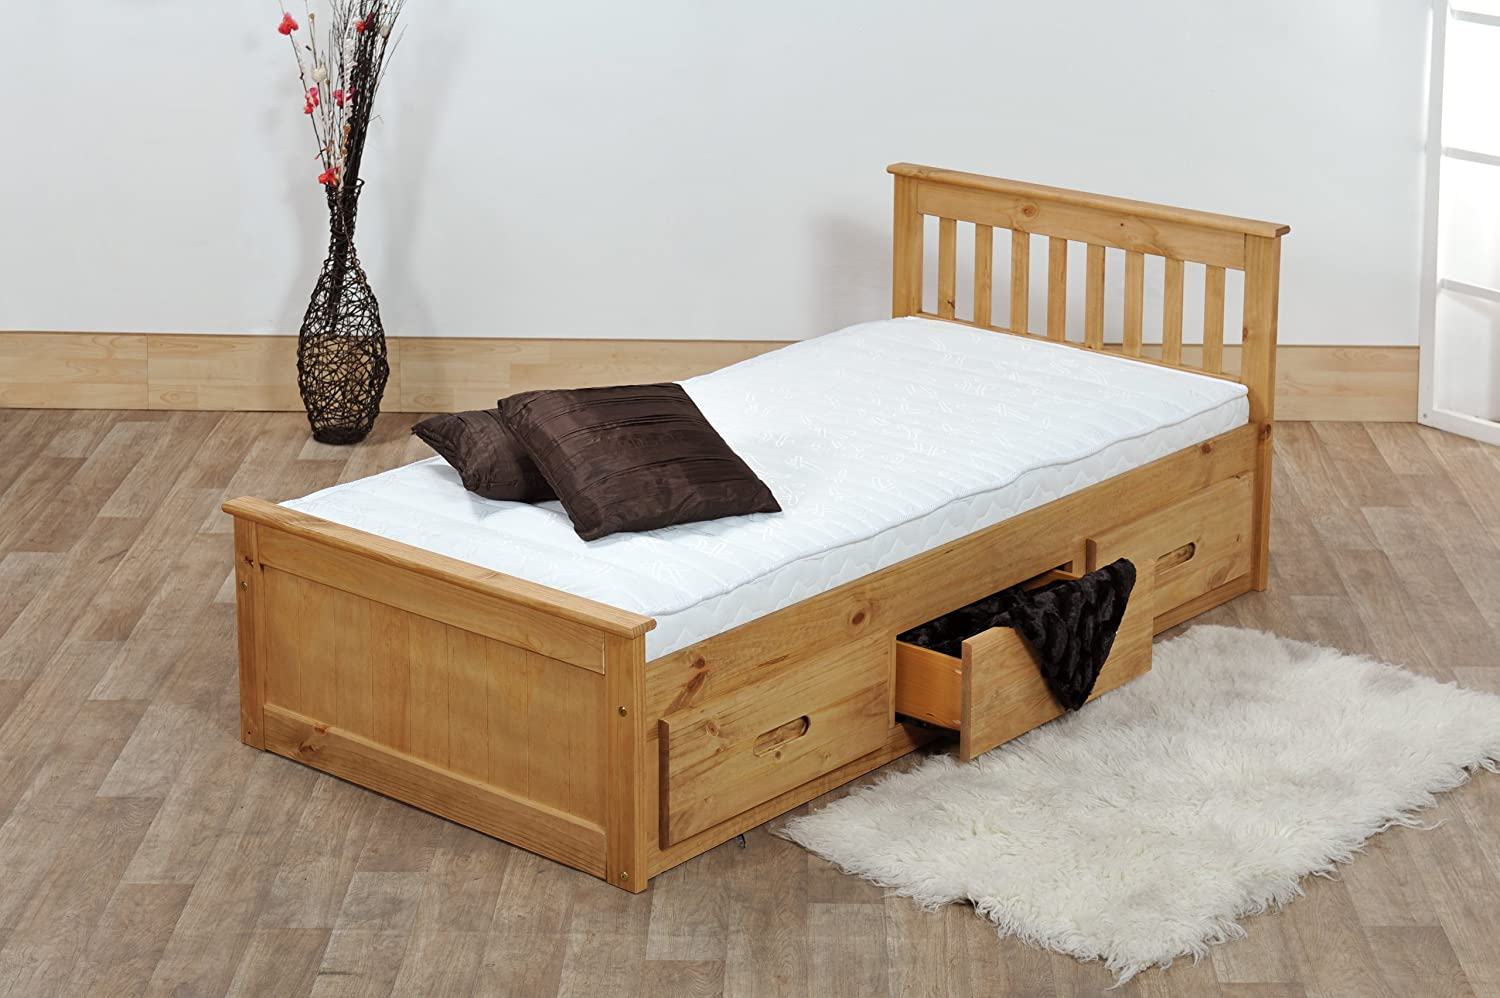 Delightful Single Bed With Storage Part - 10: 3ft Single Captain Cabin Storage Solid Pine Wooden Bed Bedframe - Waxed  Pine Finish (Made From High Quality Brazilian Sustainable Pine):  Amazon.co.uk: ...